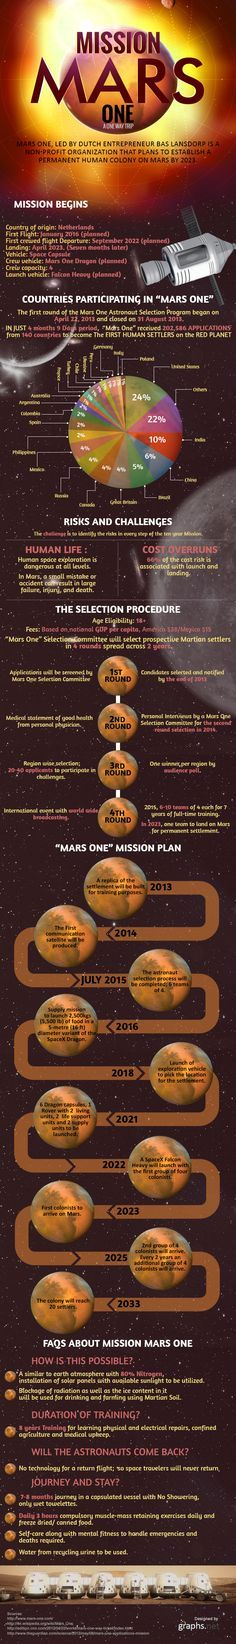 This info graphic provides information on mission of mars one way trip, countries participating in mars one, human settlement on mars and selection pr